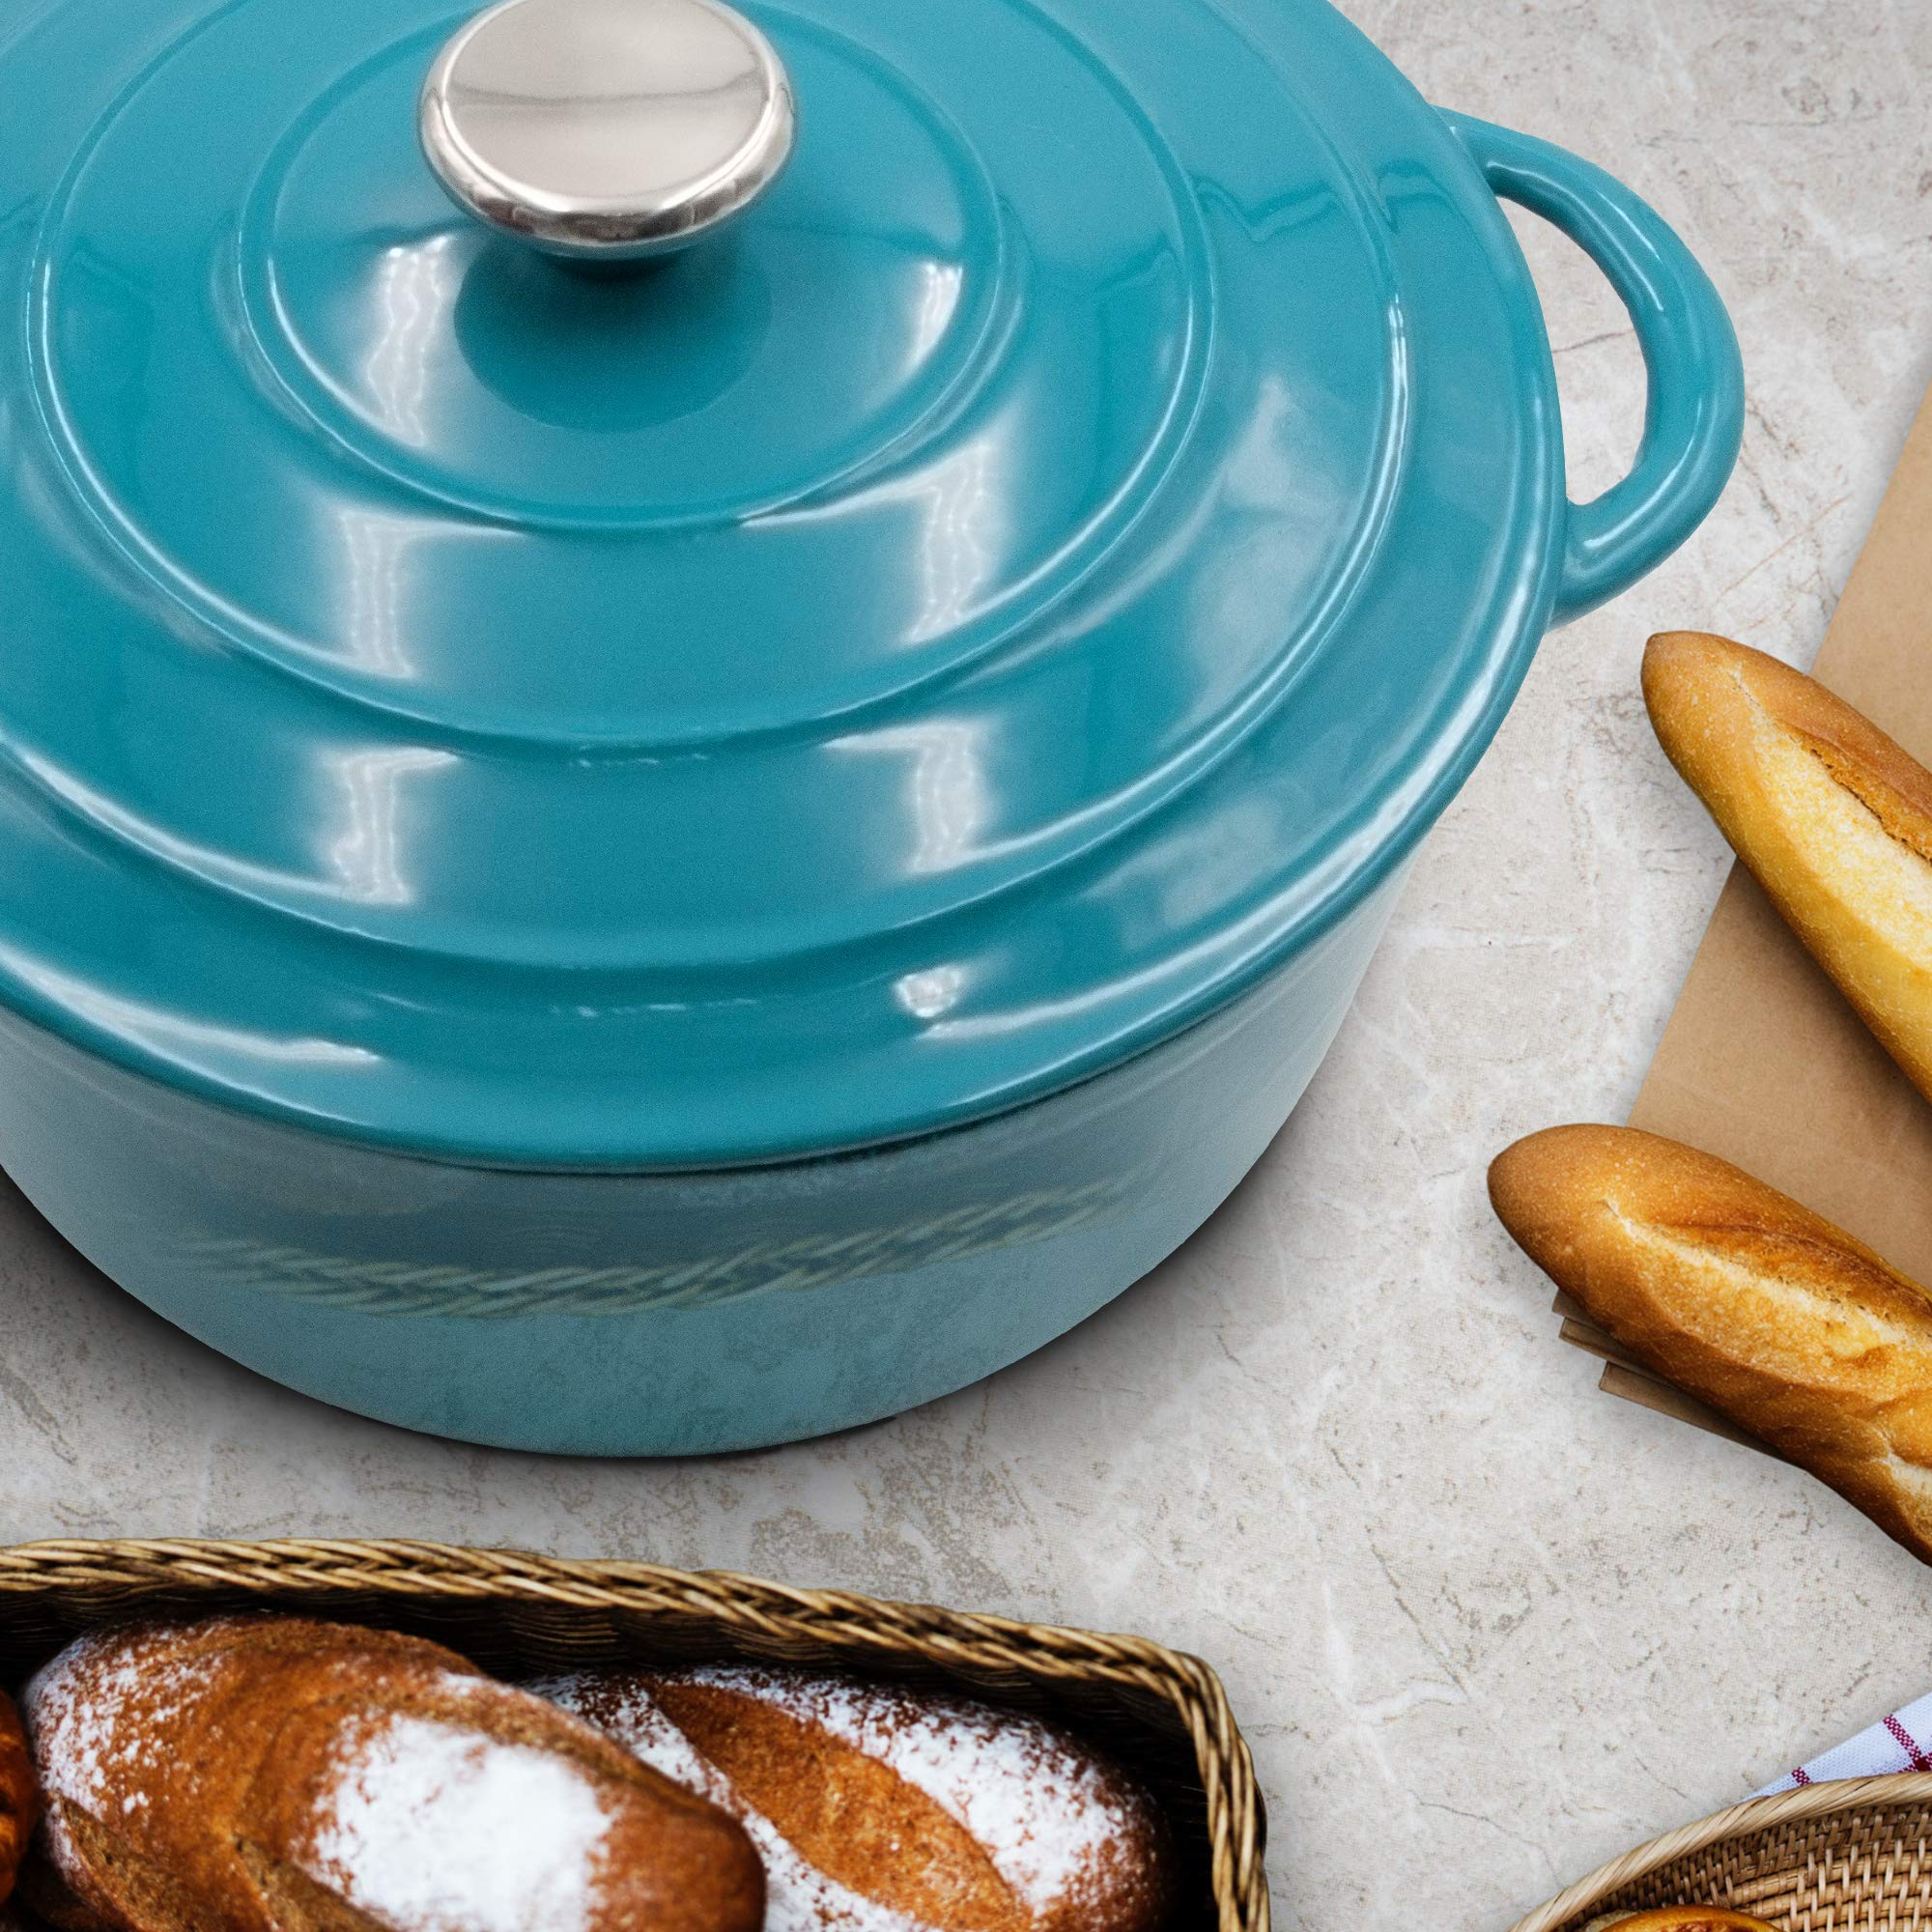 Enameled Cast Iron Dutch Oven - 5-Quart Turquoise Blue Round Ceramic Coated Cookware French Oven with Self Basting Lid by AIDEA by AIDEA (Image #2)